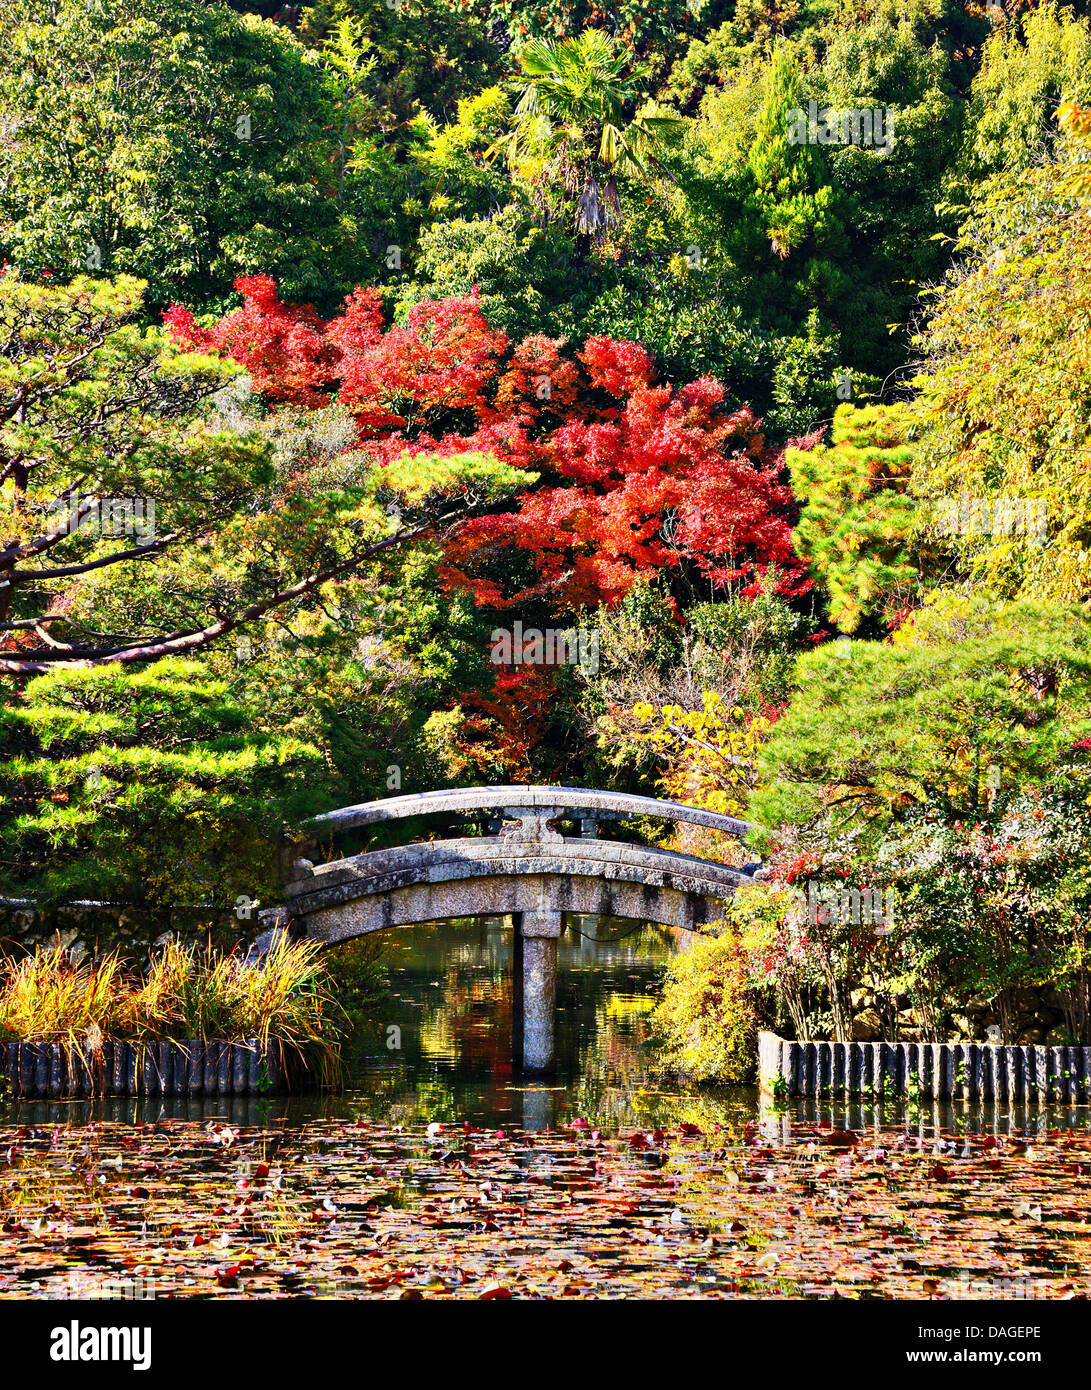 Serene bridge and pond of a Japanese Garden in Kyoto. - Stock Image